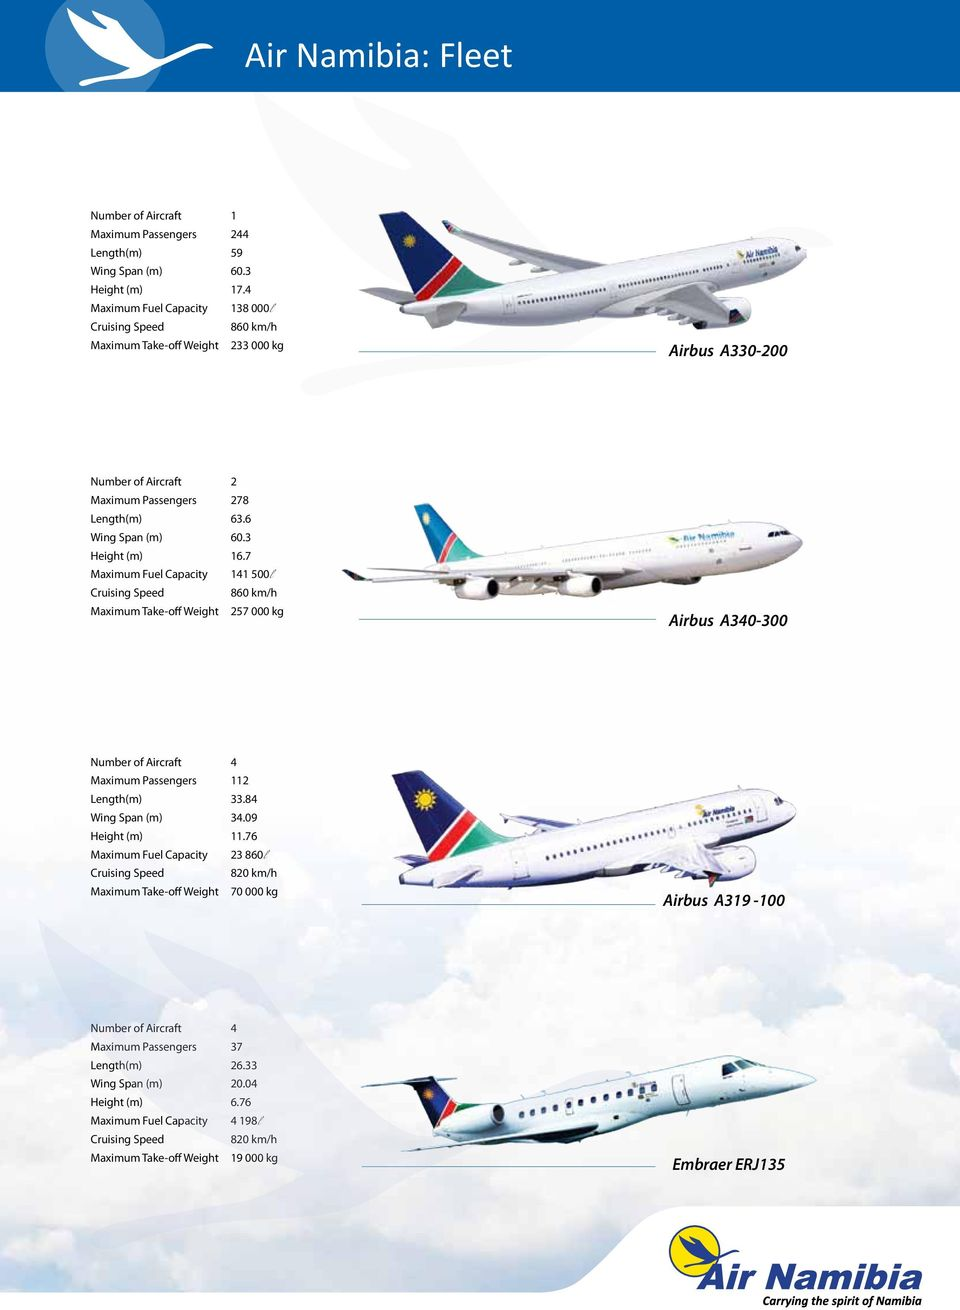 7 Maximum Fuel Capacity 141 500l Cruising Speed 860 km/h Maximum Take-off Weight 257 000 kg Airbus A340-300 Number of Aircraft 4 Maximum Passengers 112 Length(m) 33.84 Wing Span (m) 34.